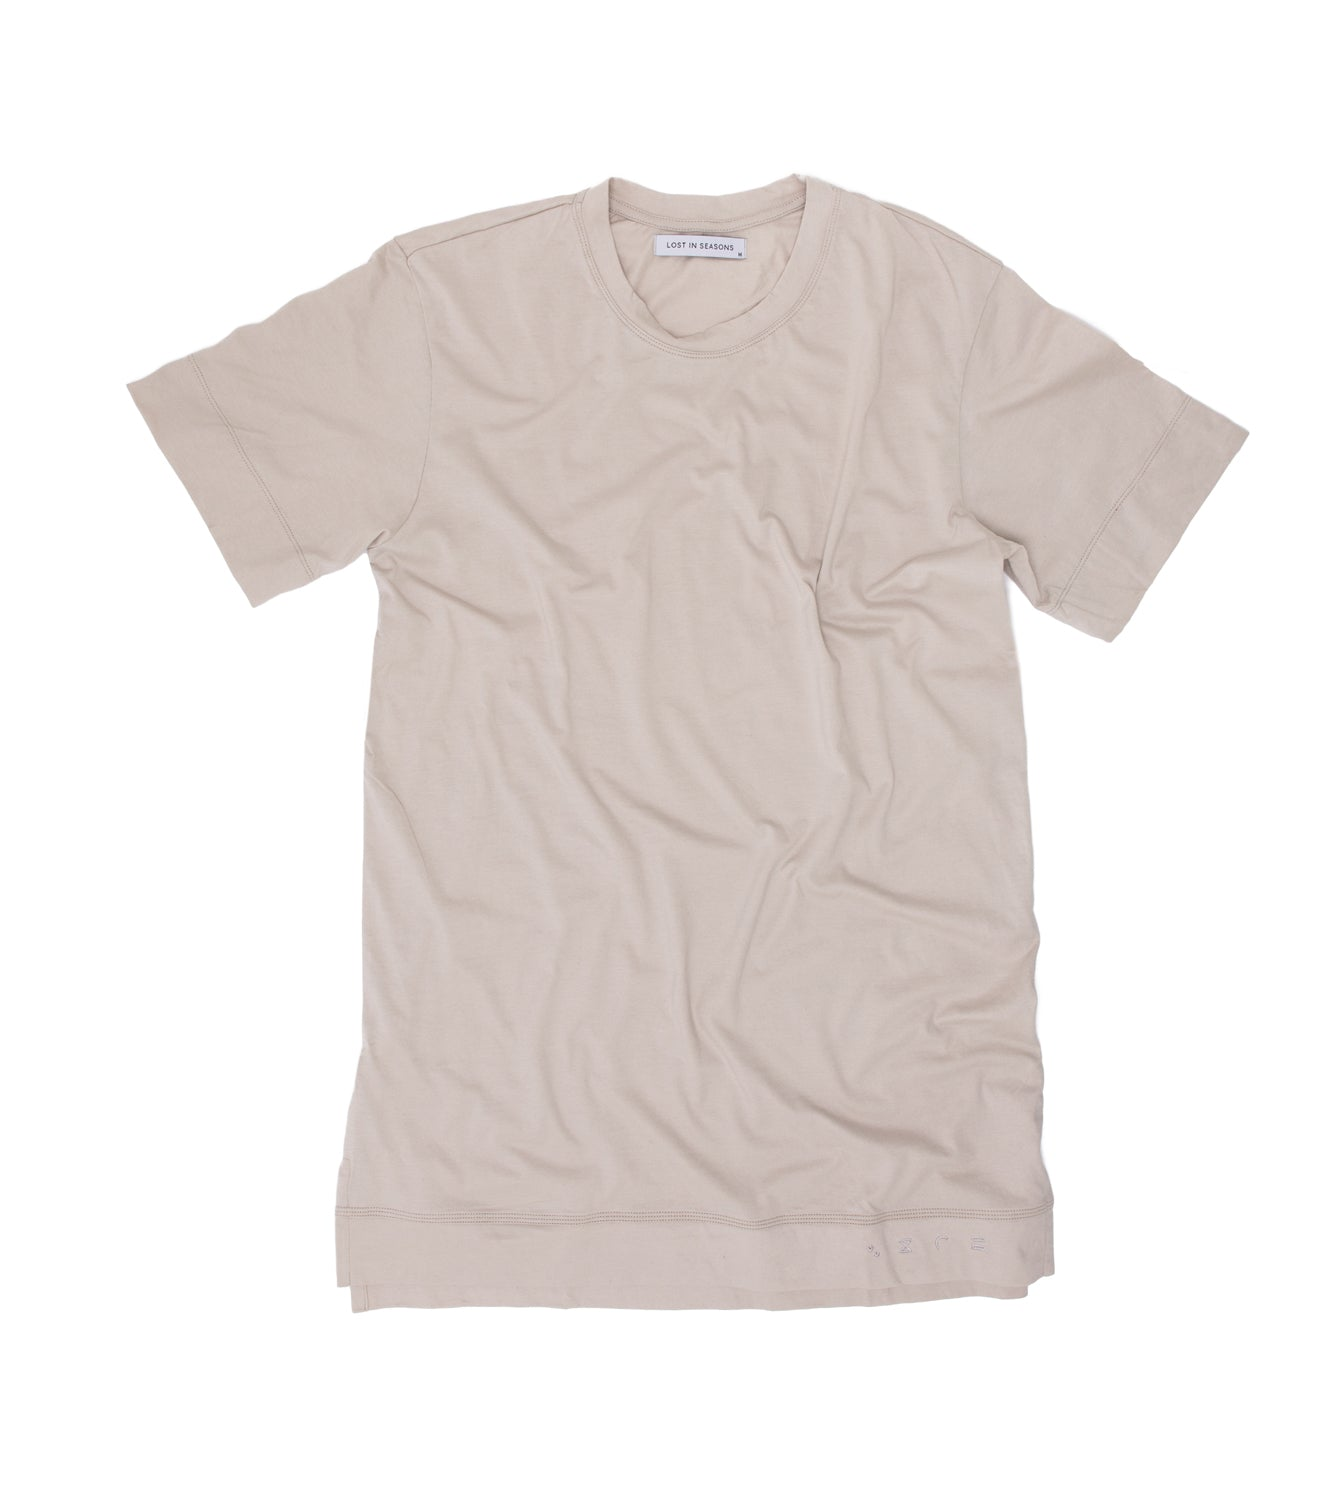 Mens T-shirt w/ Embroidery Soil